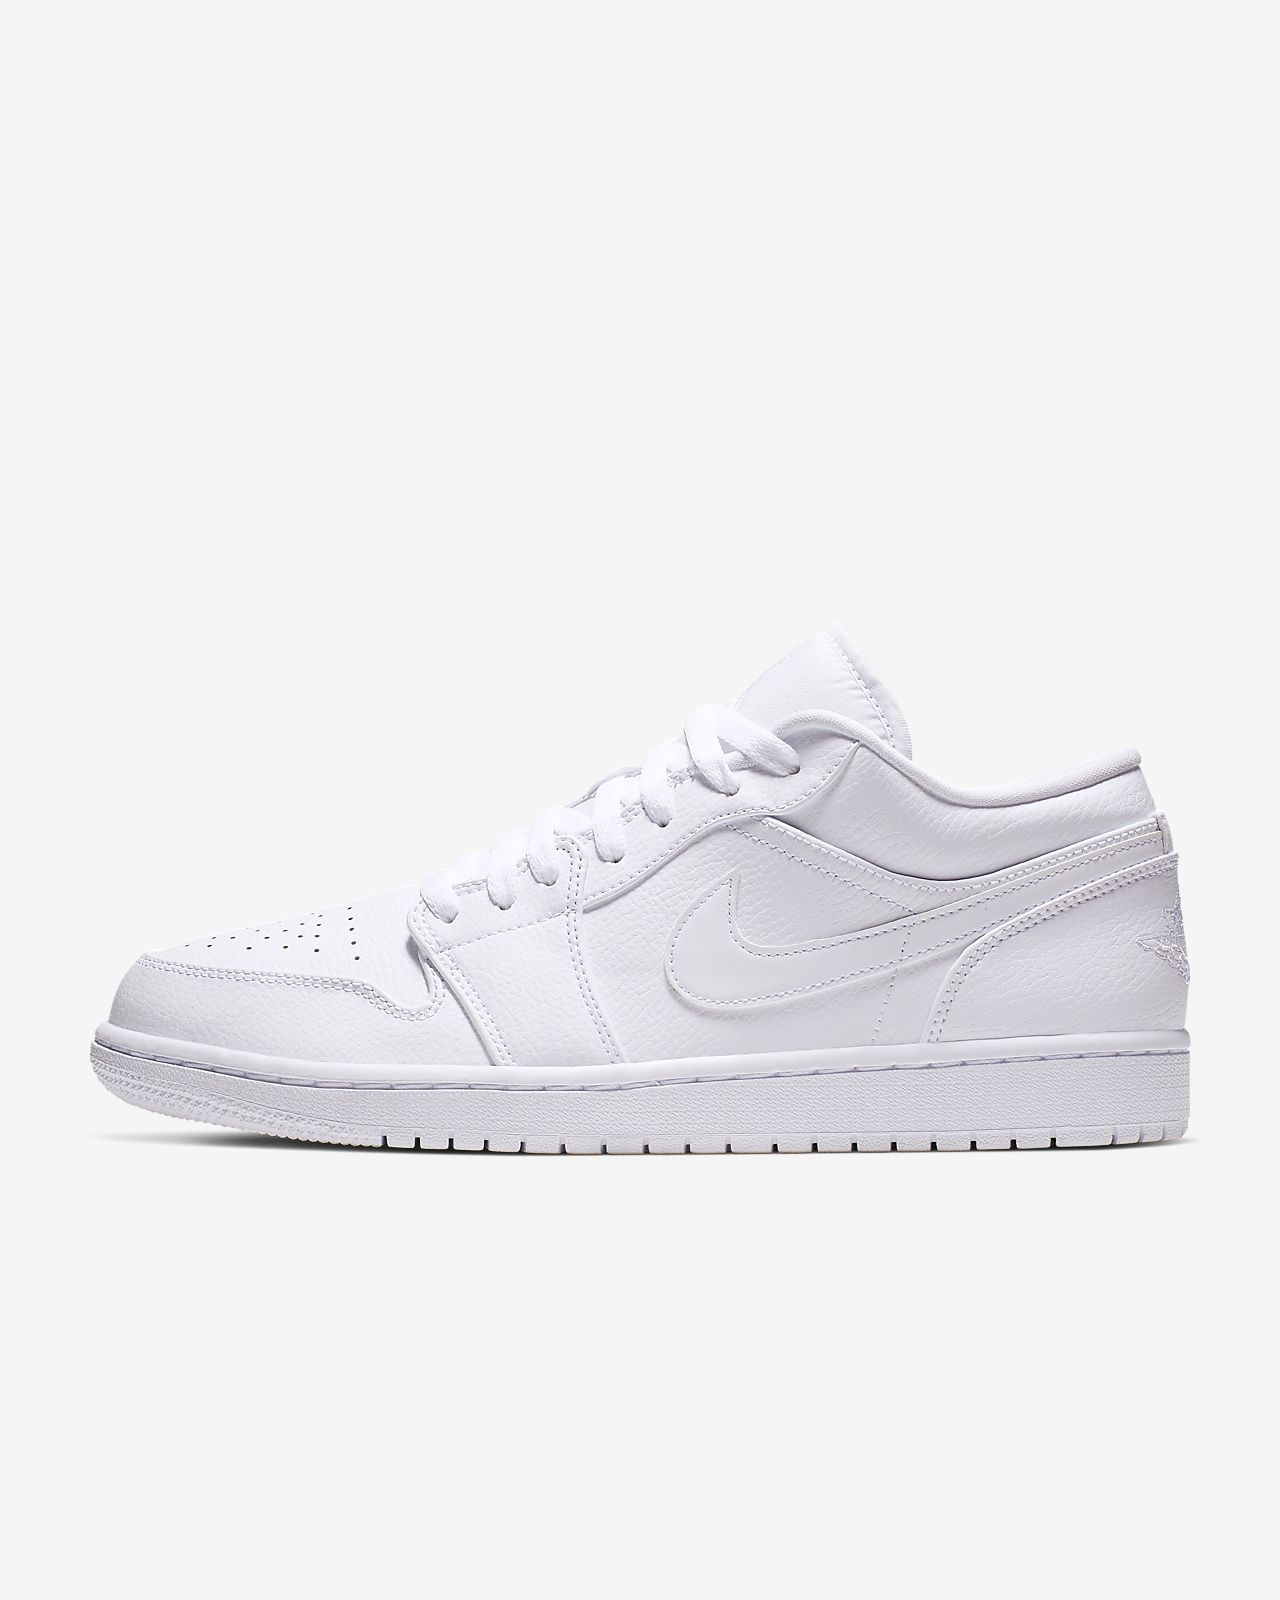 298a5296da14 Air Jordan 1 Low Men s Shoe. Nike.com GB